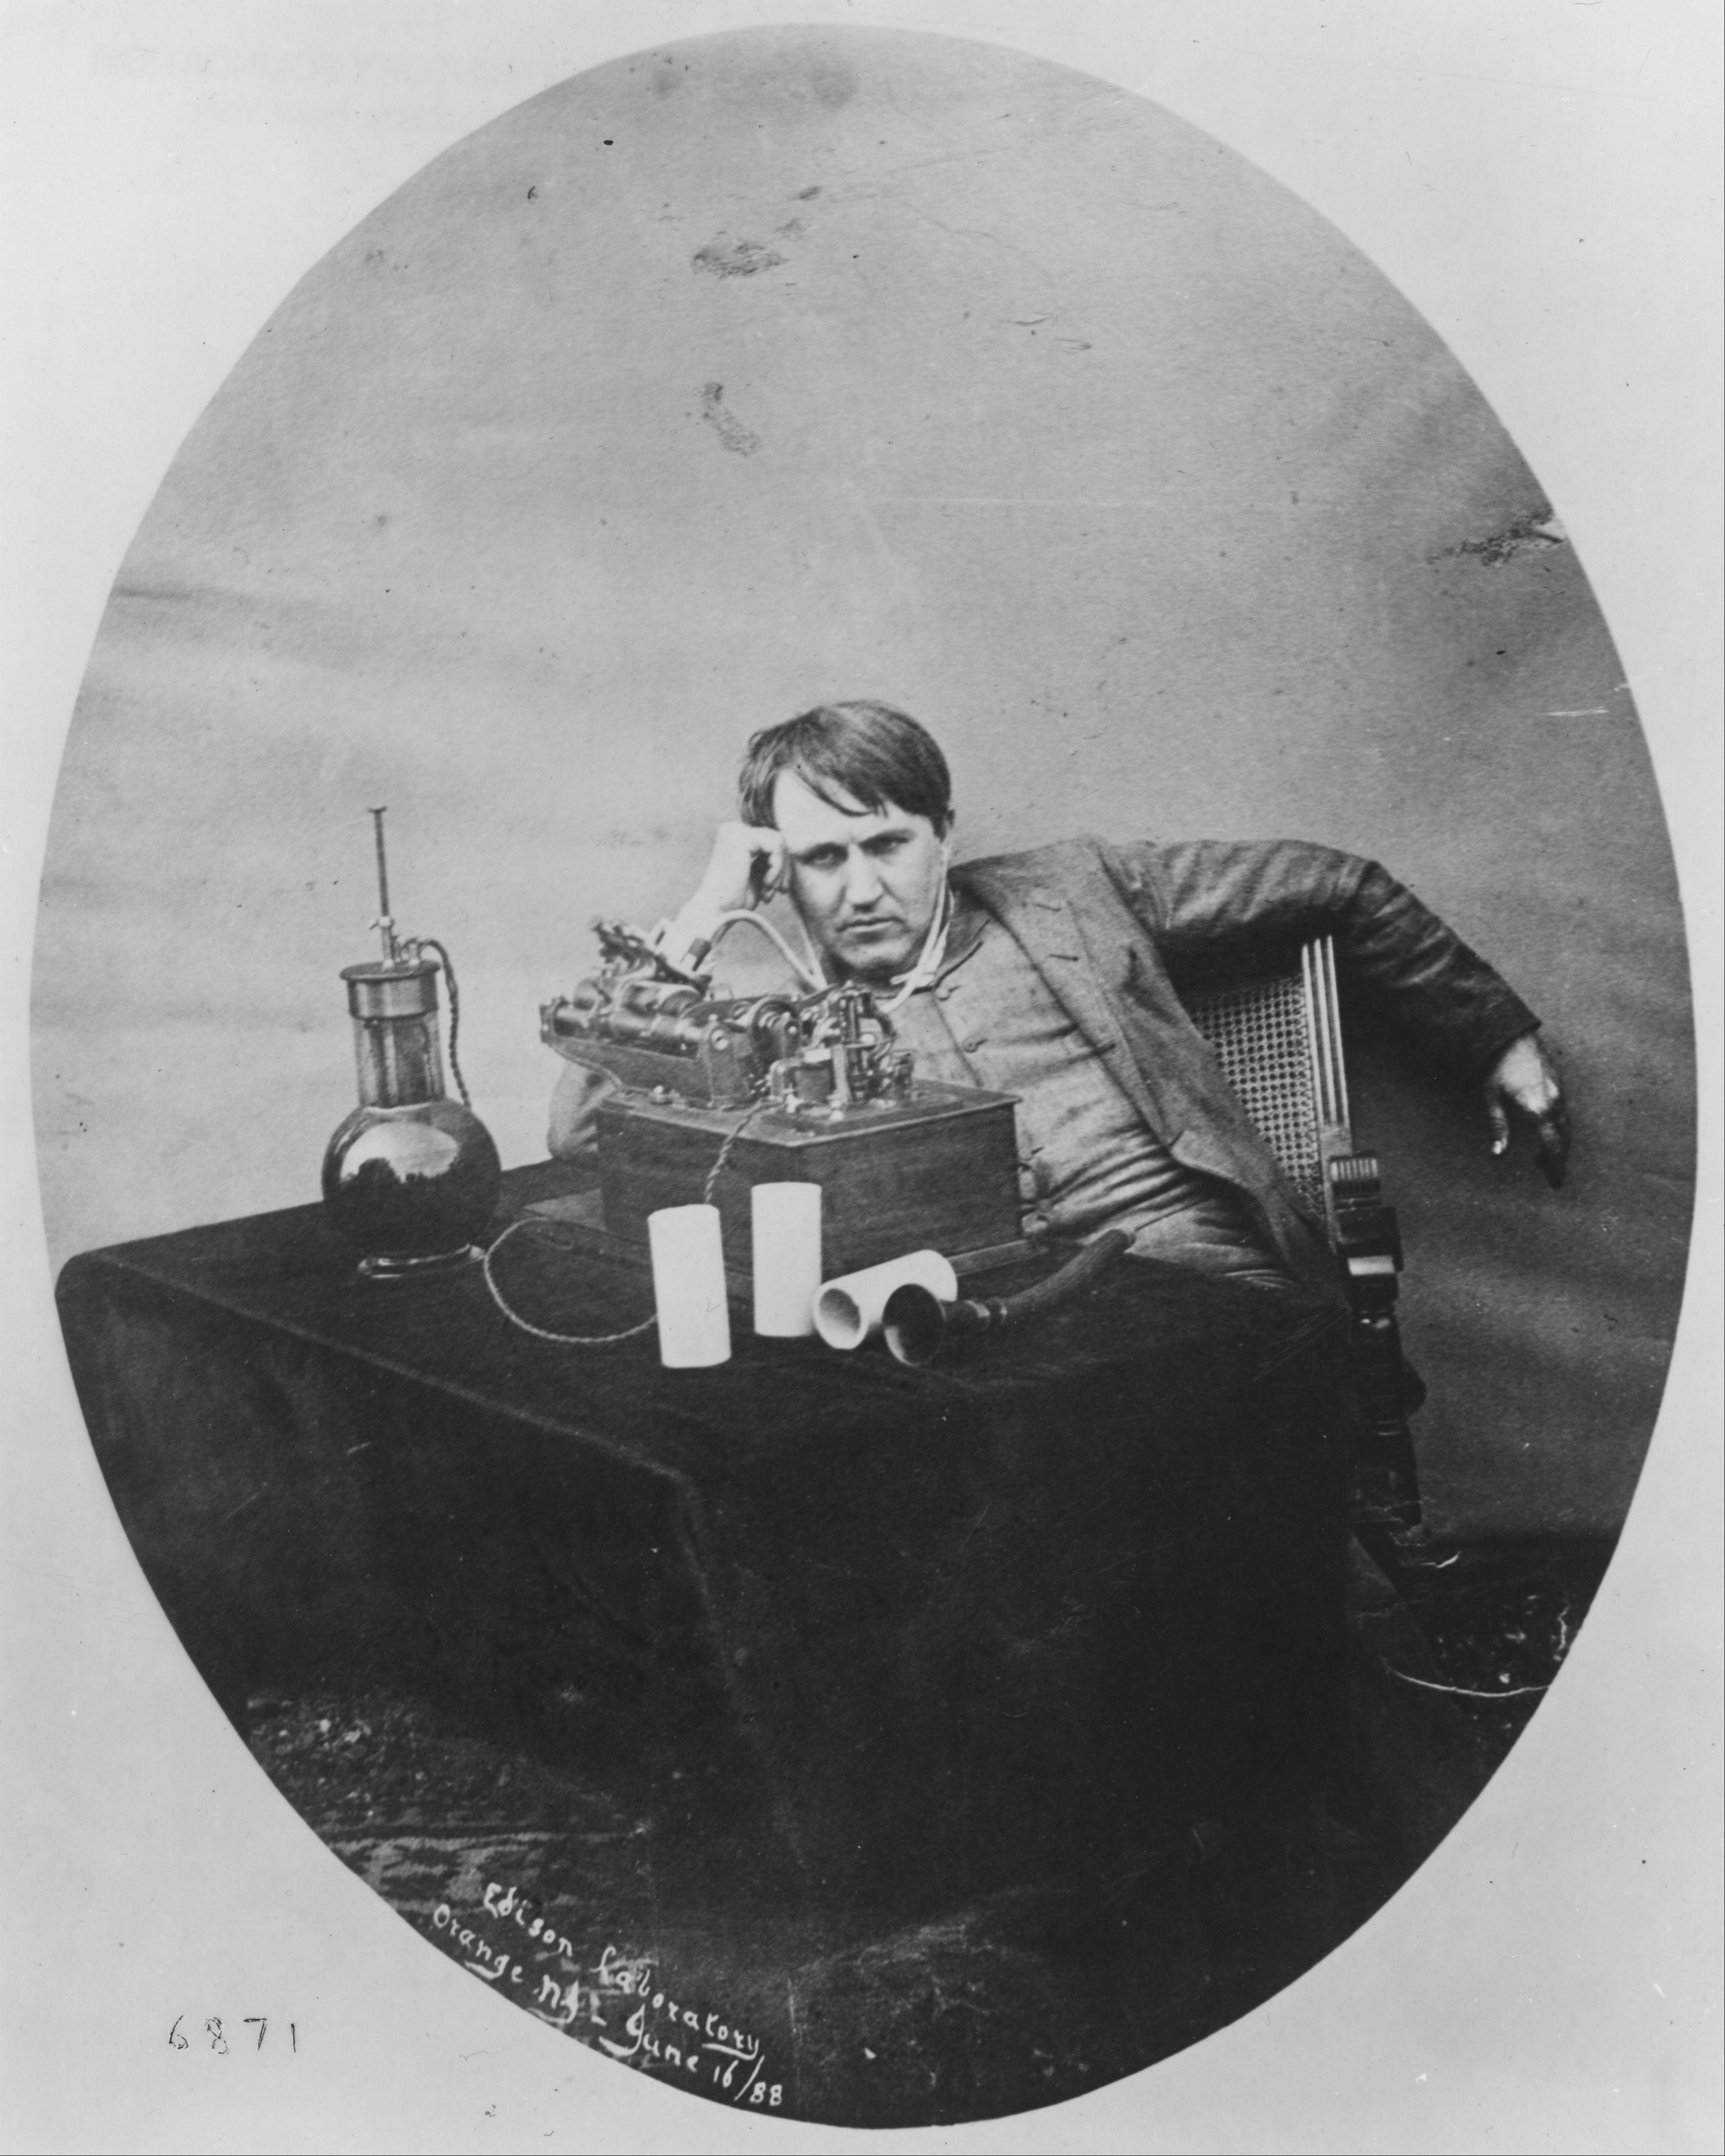 This 1888 photo provided by the Museum of Innovation and Science in Schenectady, N.Y., shows Thomas Edison listening to a wax cylinder phonograph.